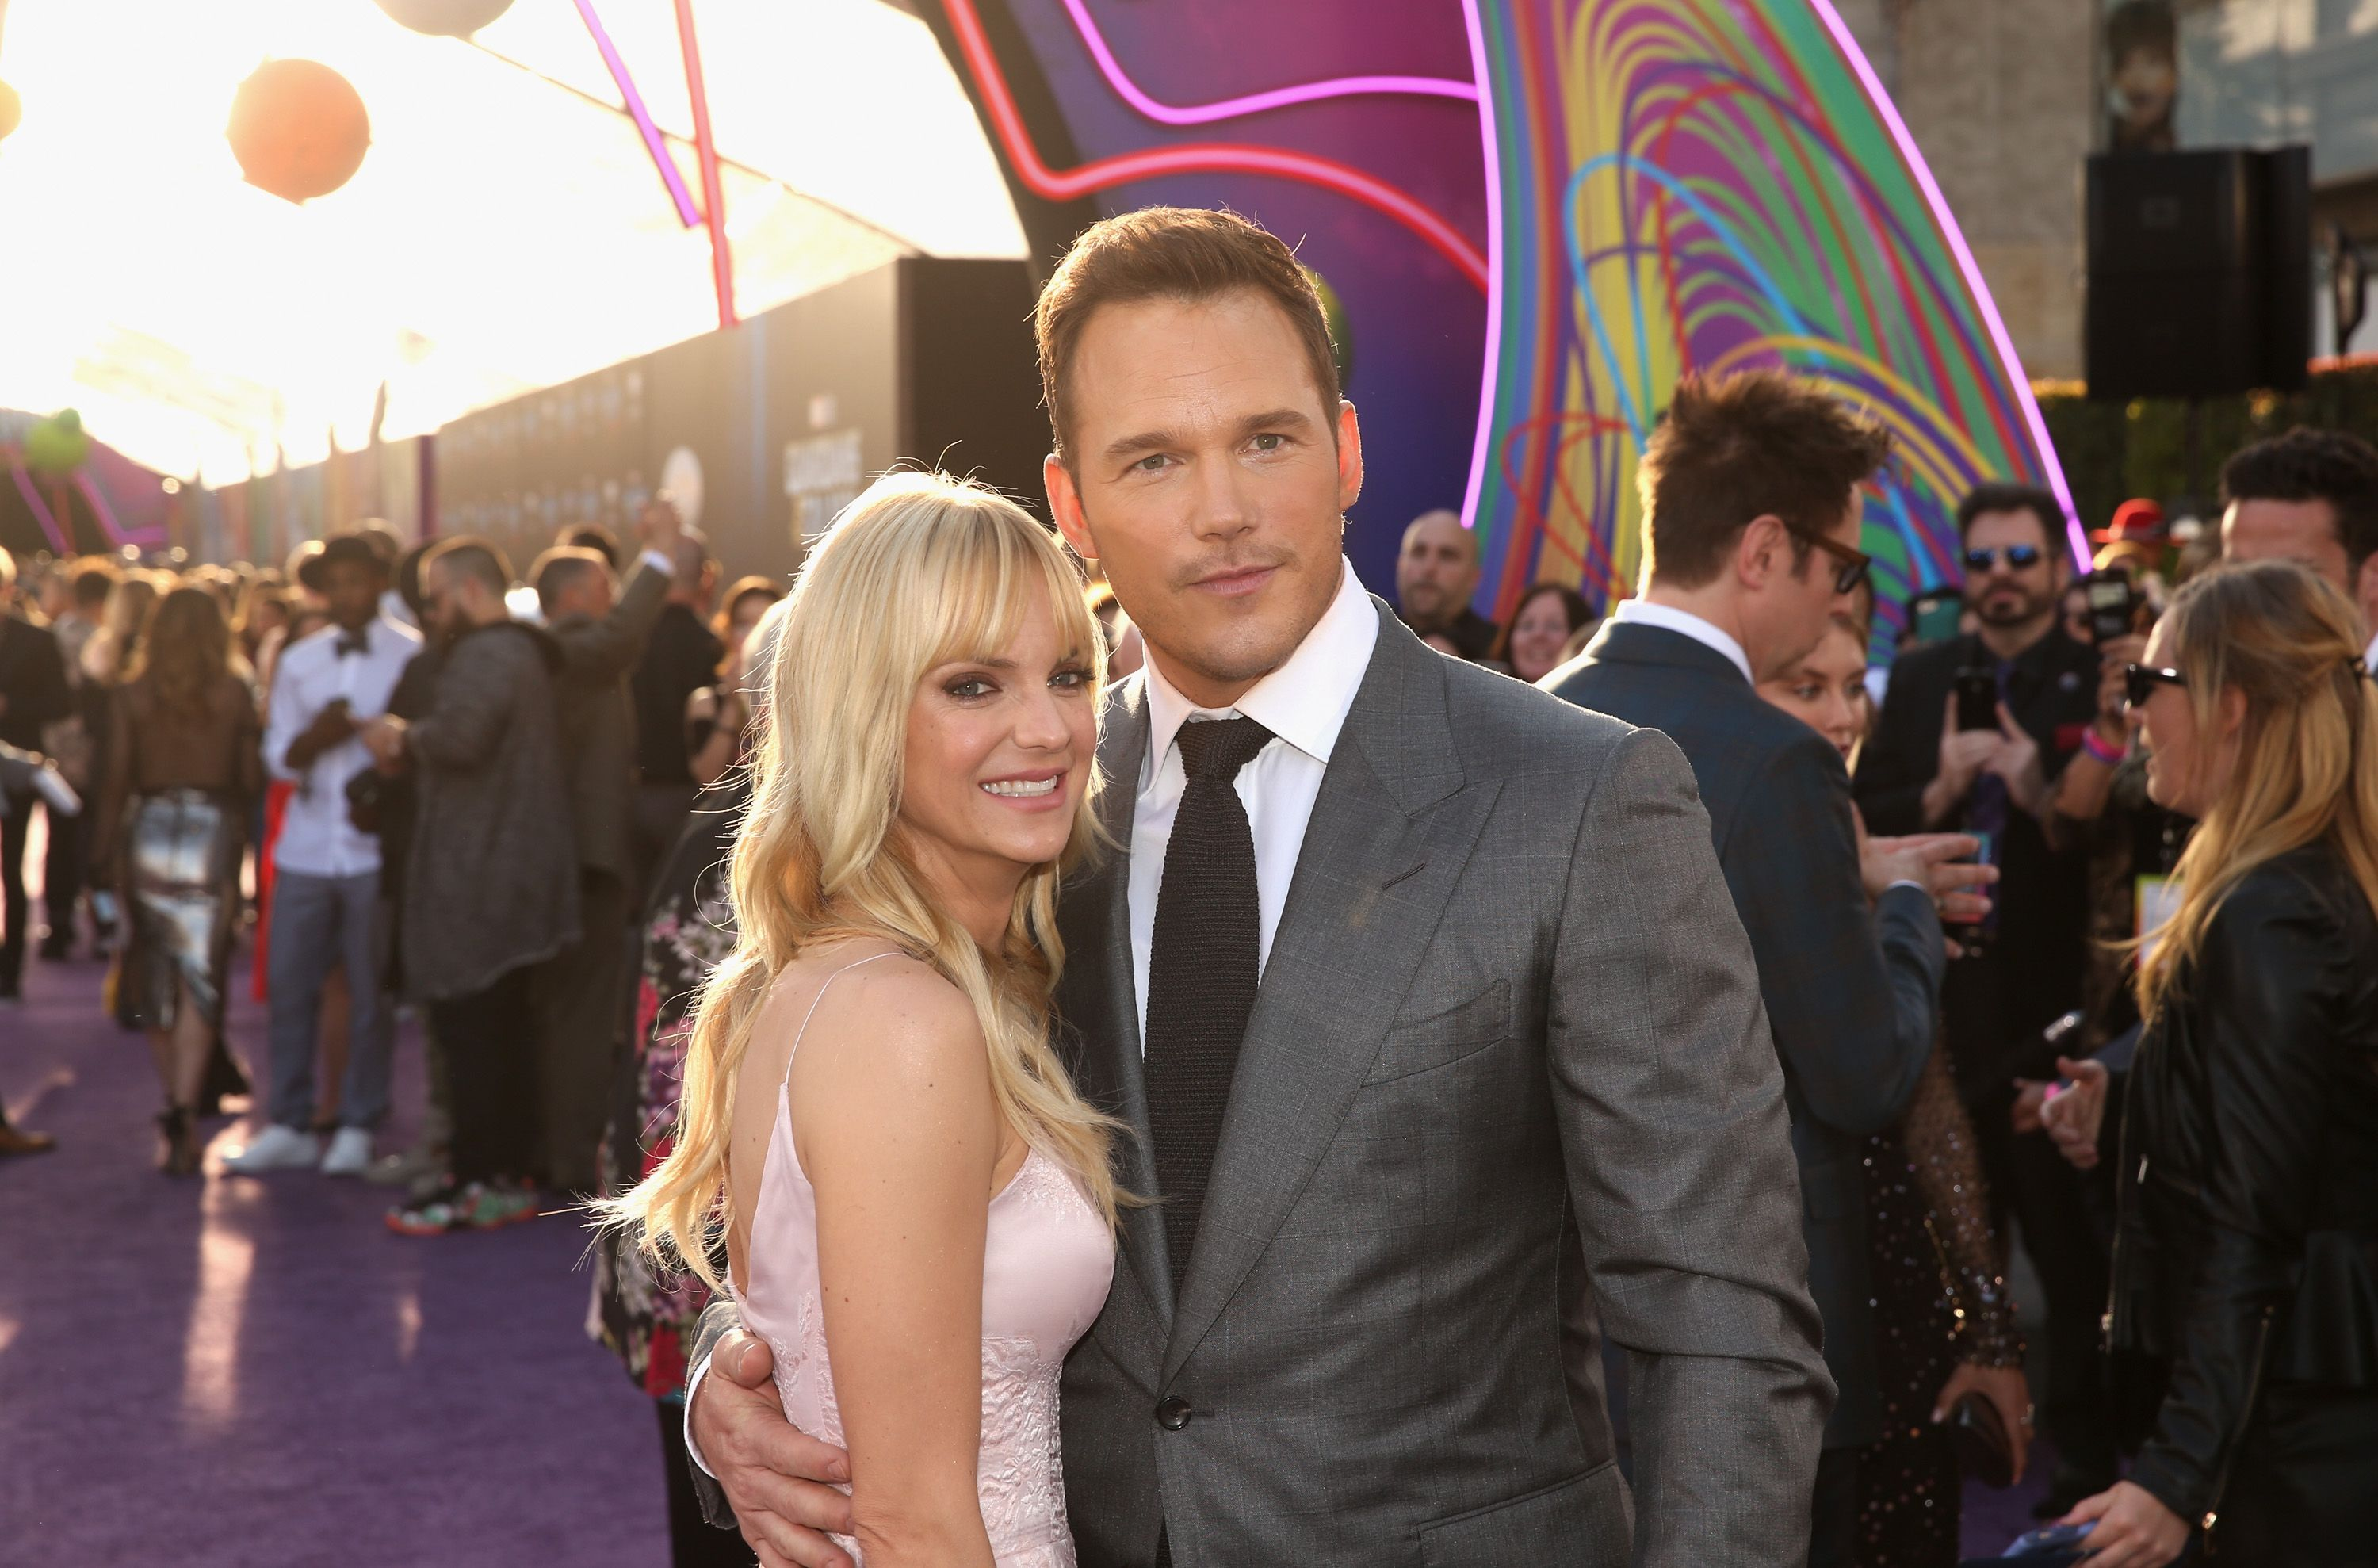 How Chris Pratt Told Anna Faris About His Engagement to